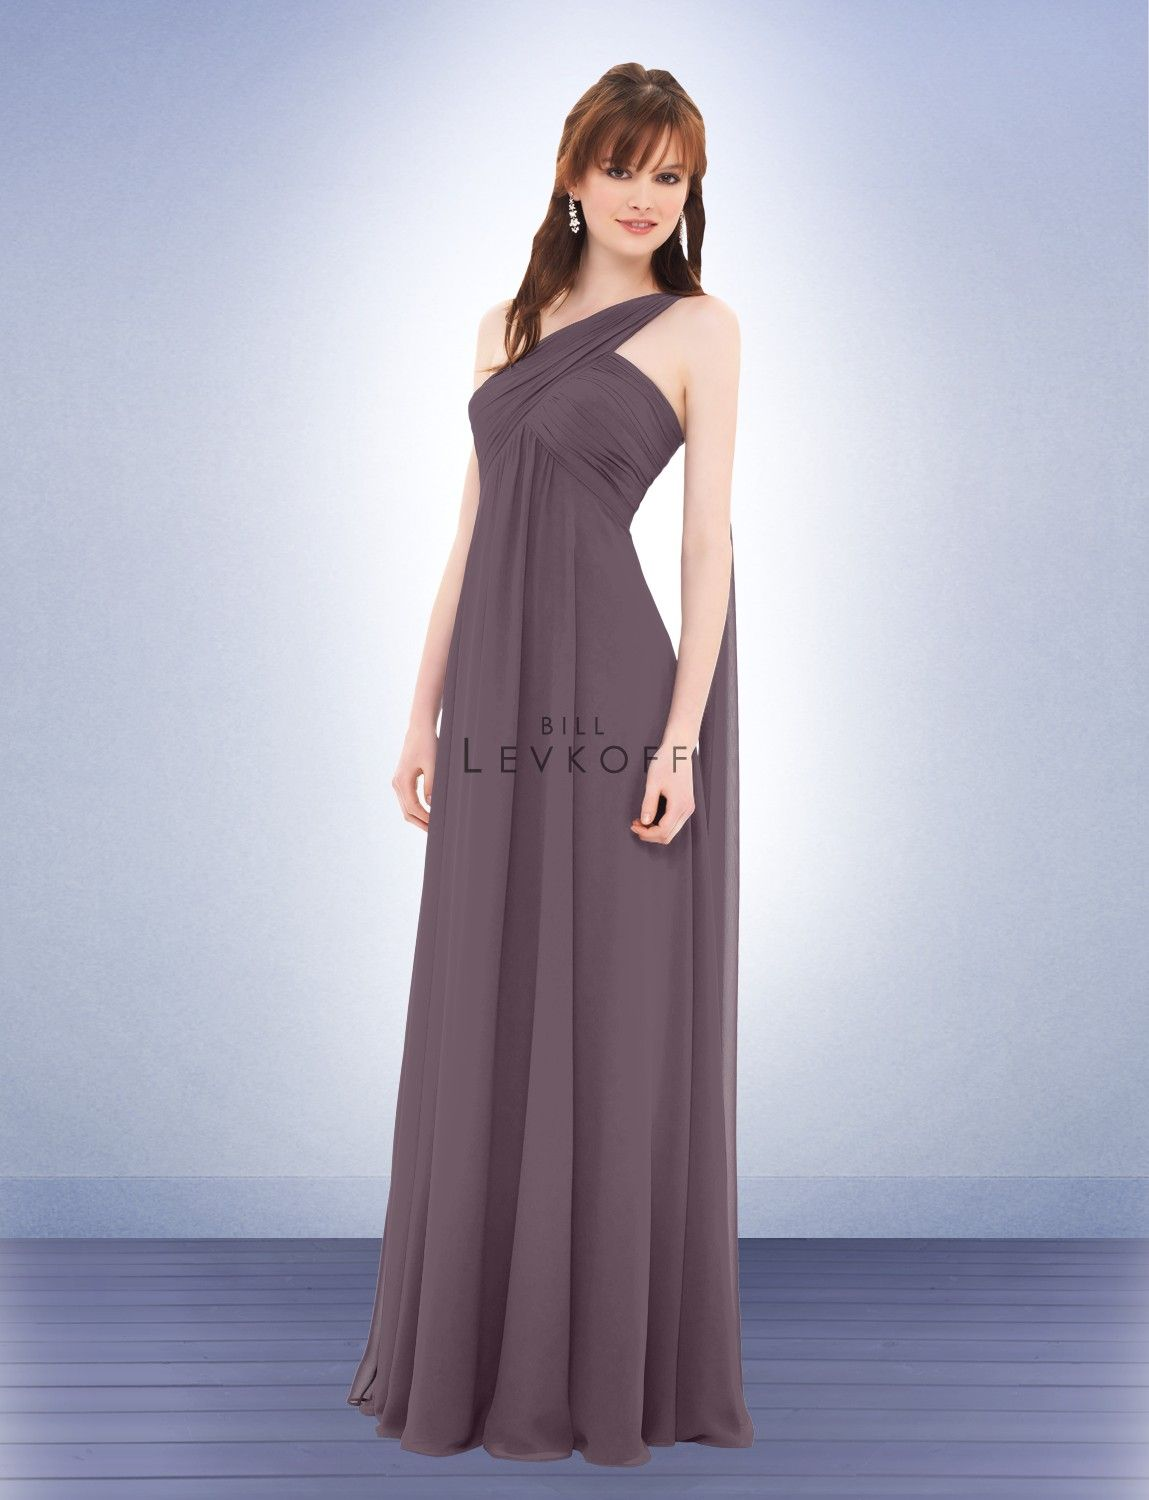 Bill Levkoff, color: victorian lilac, Style 675 My Bridesmaid ...